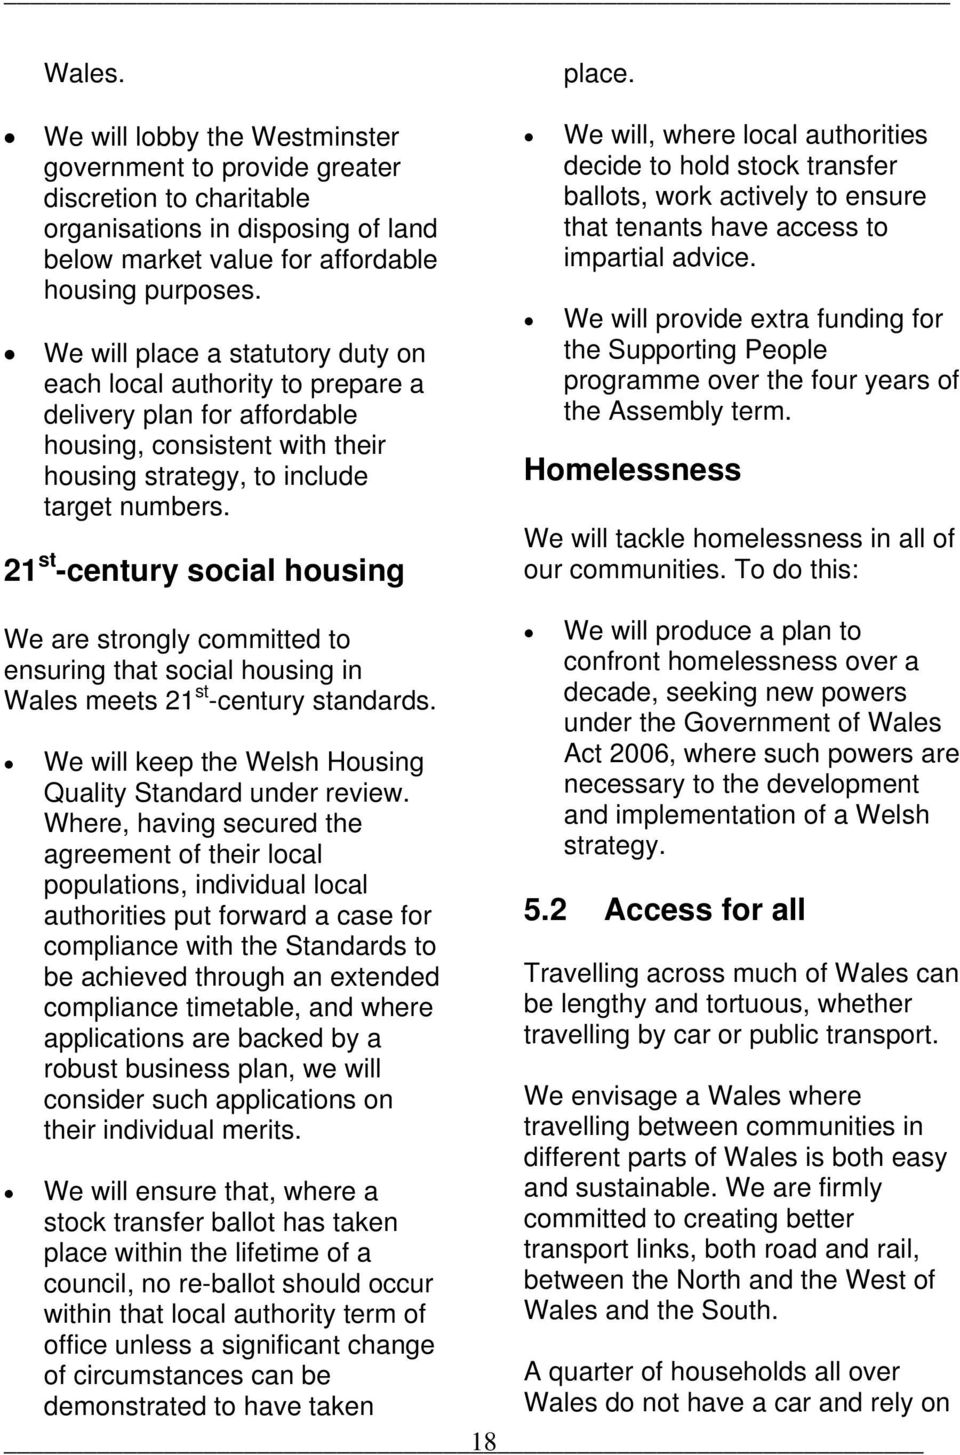 21 st -century social housing place. We will, where local authorities decide to hold stock transfer ballots, work actively to ensure that tenants have access to impartial advice.